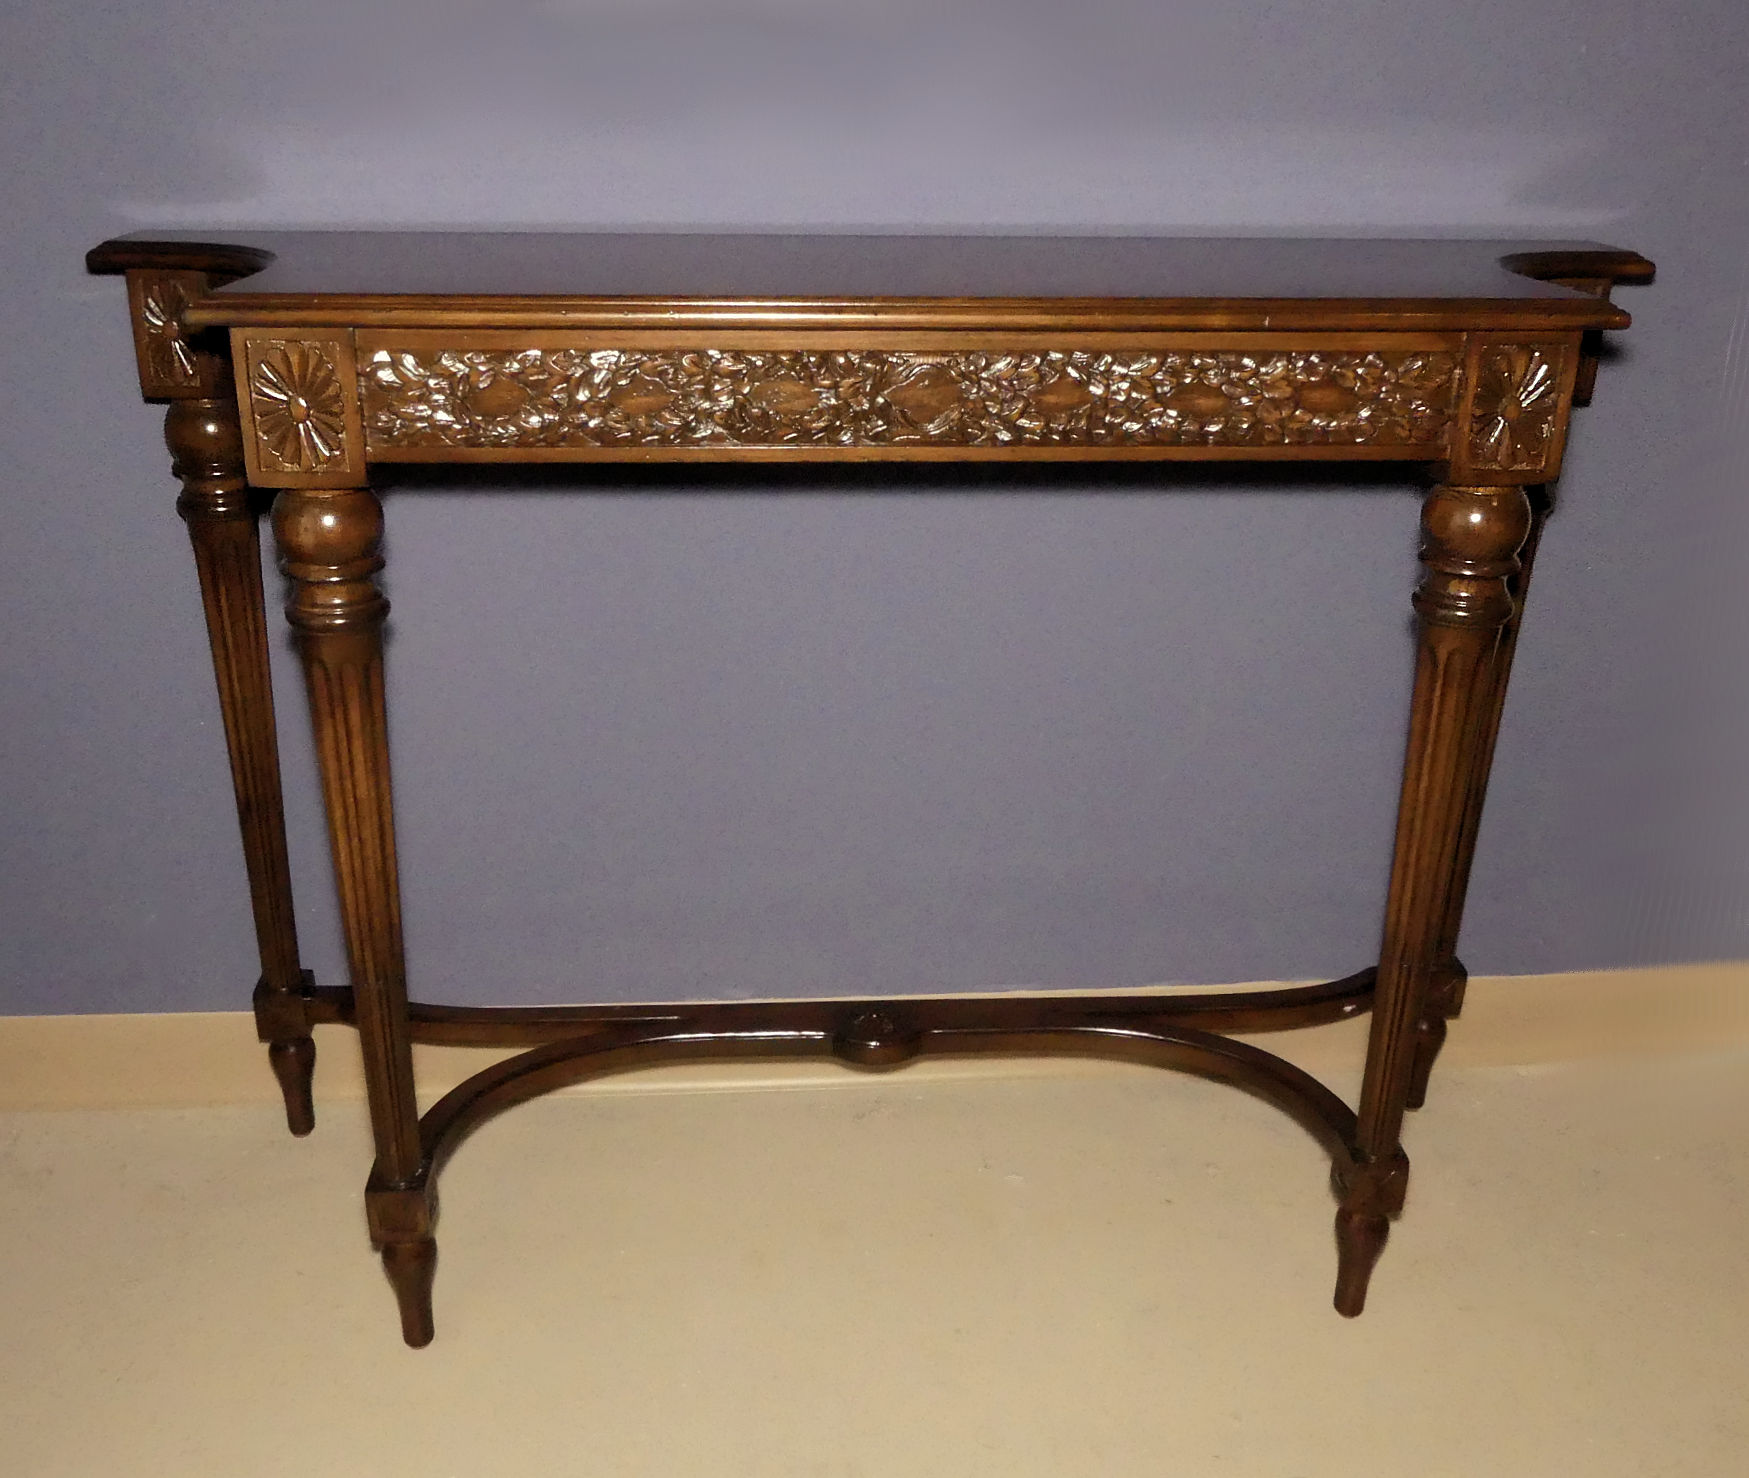 SOLD  Carved Wood Italian Neoclassical Console Table